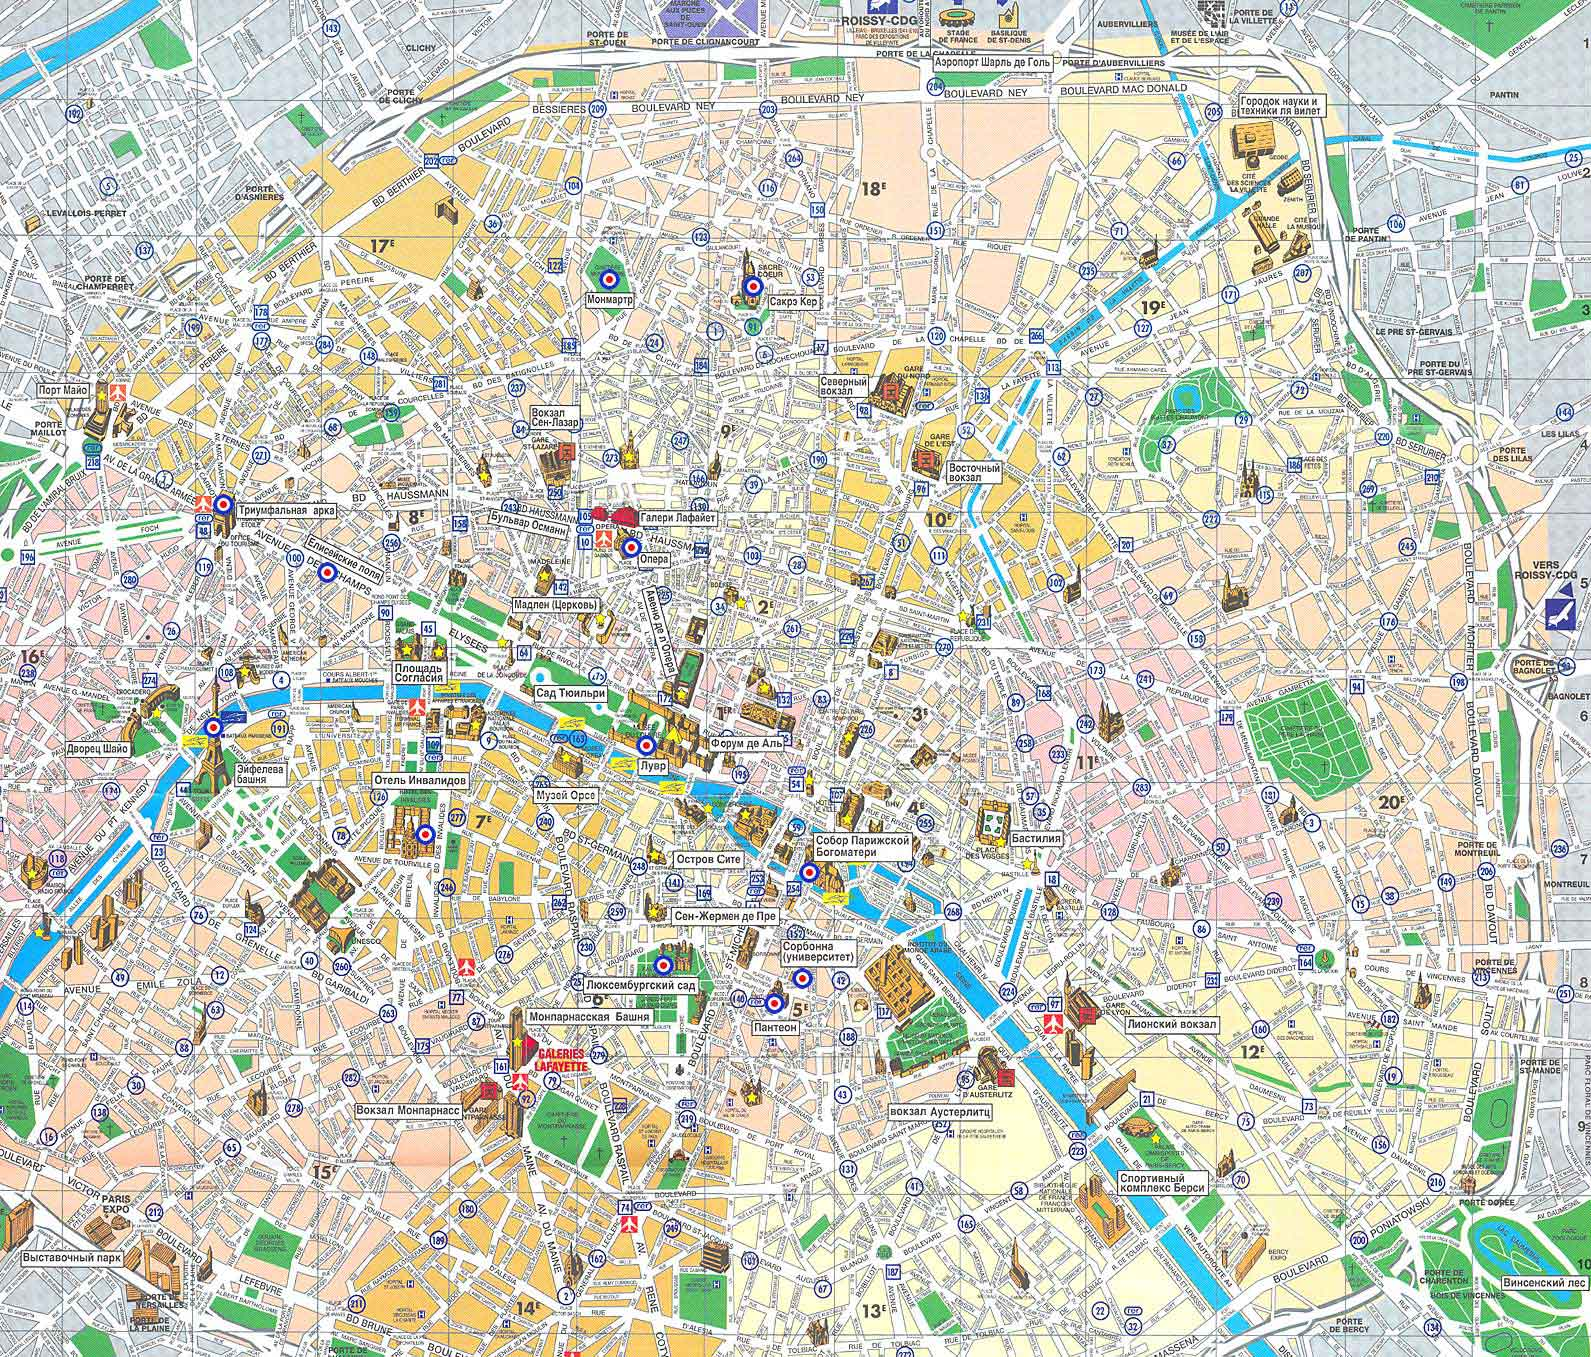 Super Paris Map - Detailed City and Metro Maps of Paris for Download  MD88